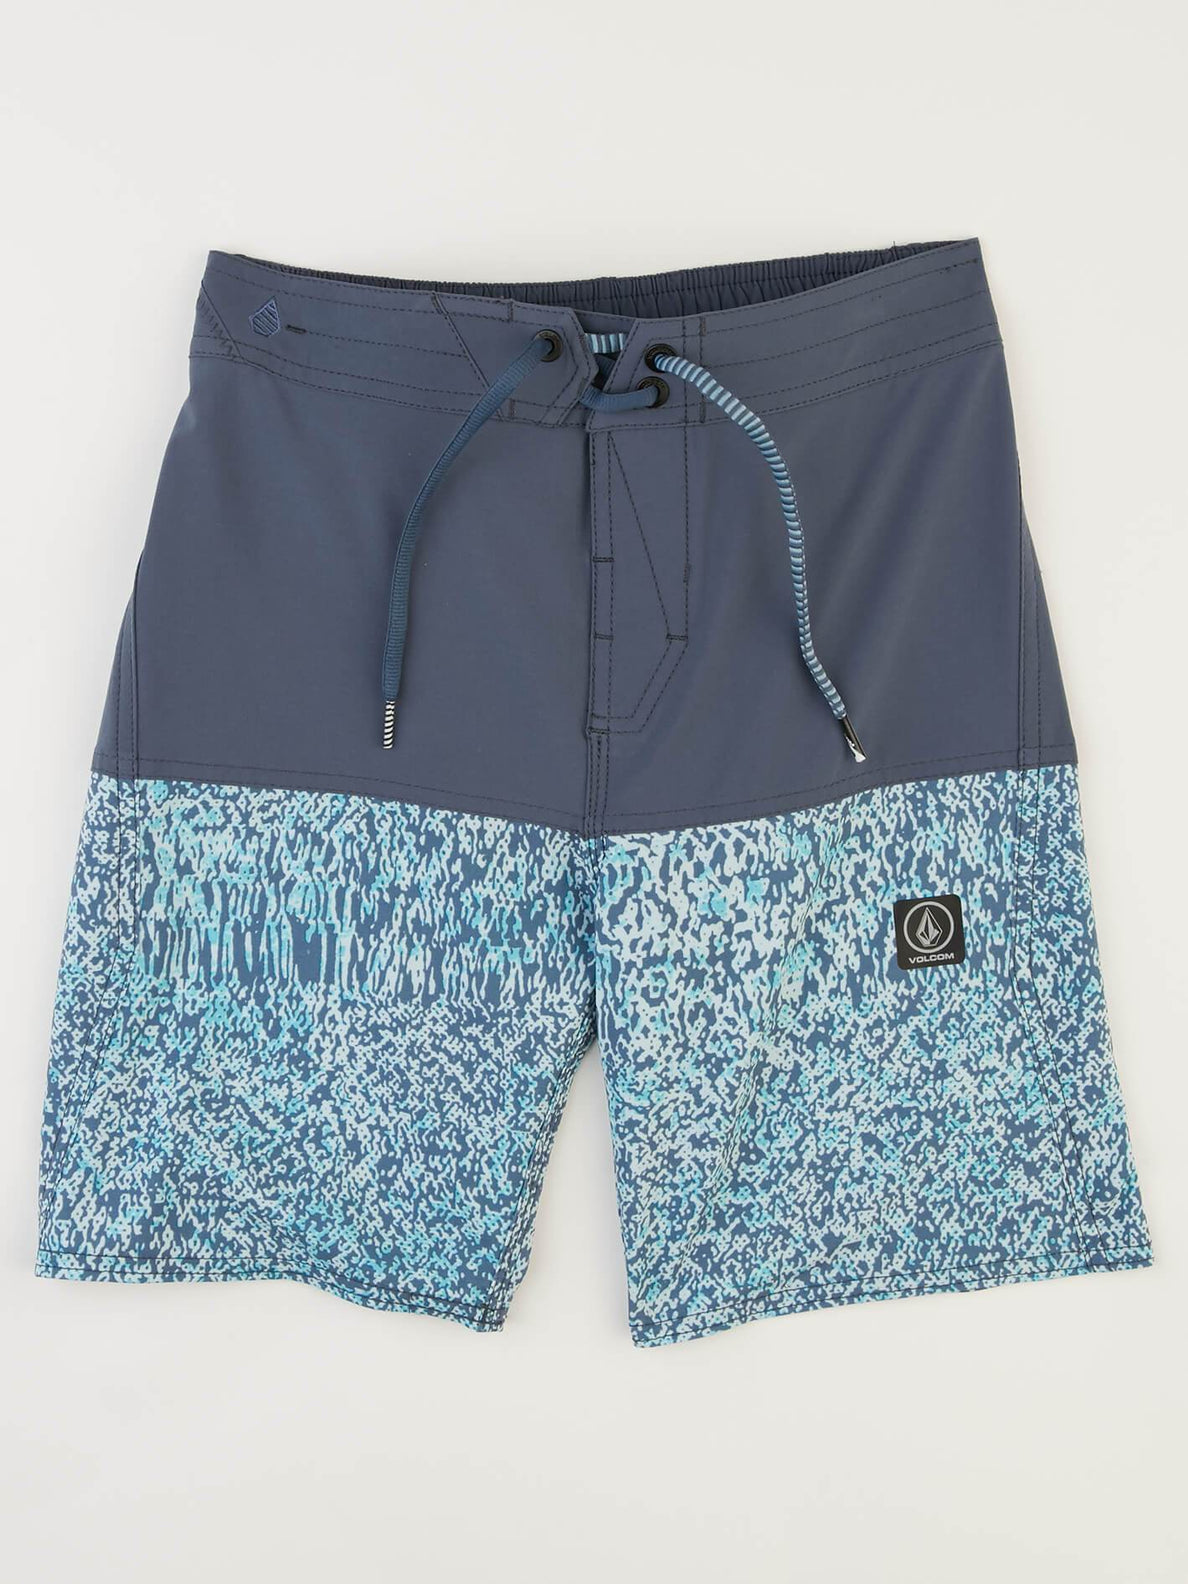 Big Boys Vibes Elastic Boardshorts In Deep Blue, Front View